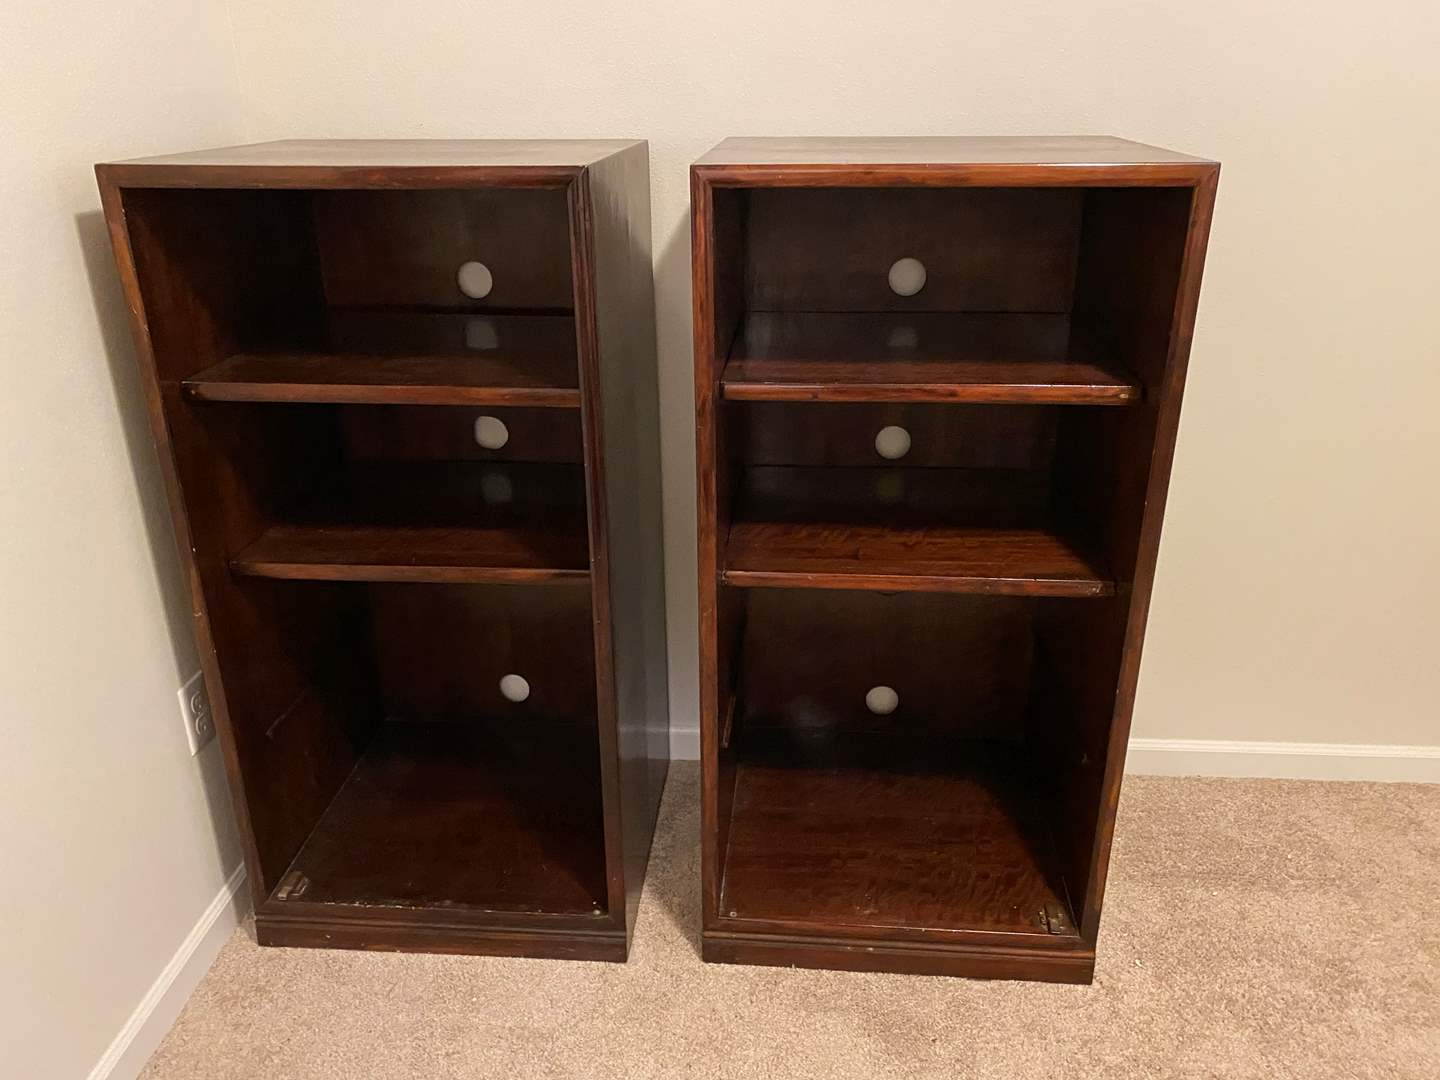 Lot # 119 - Two Wood Media Cabinets (main image)